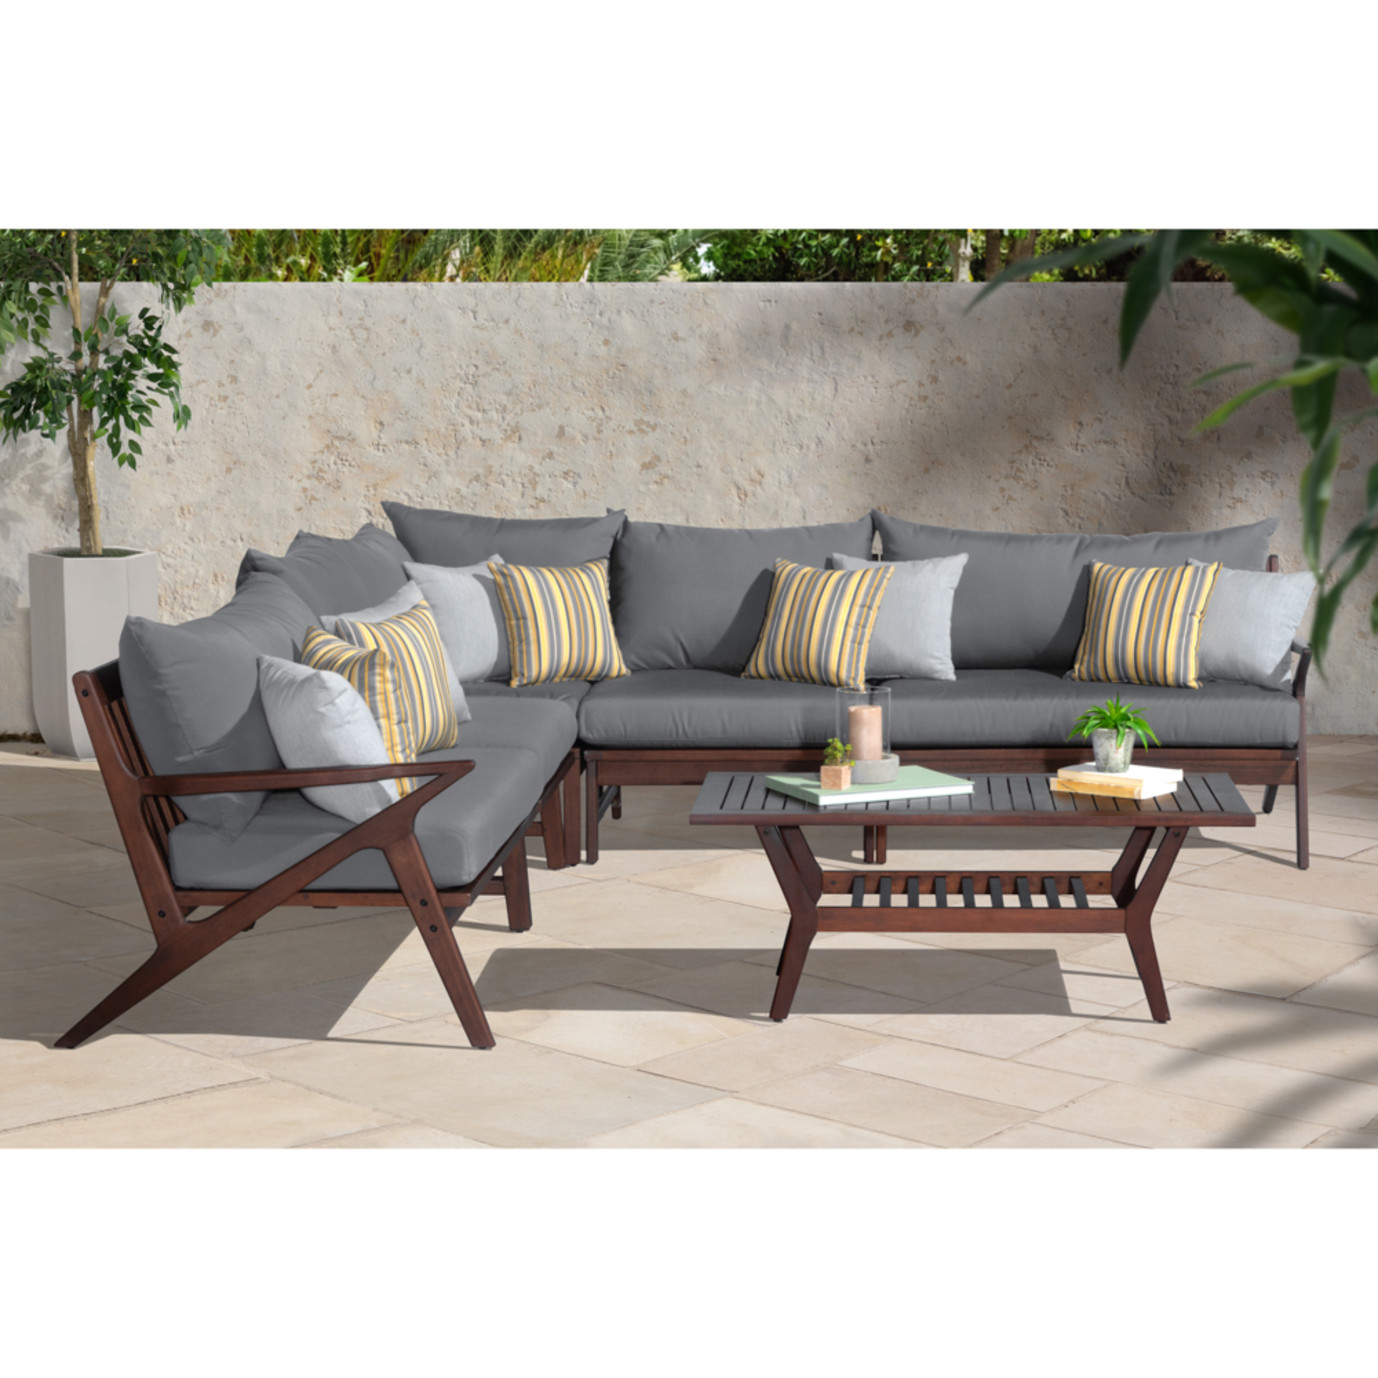 Vaughn 6 Piece Sectional - Charcoal Gray